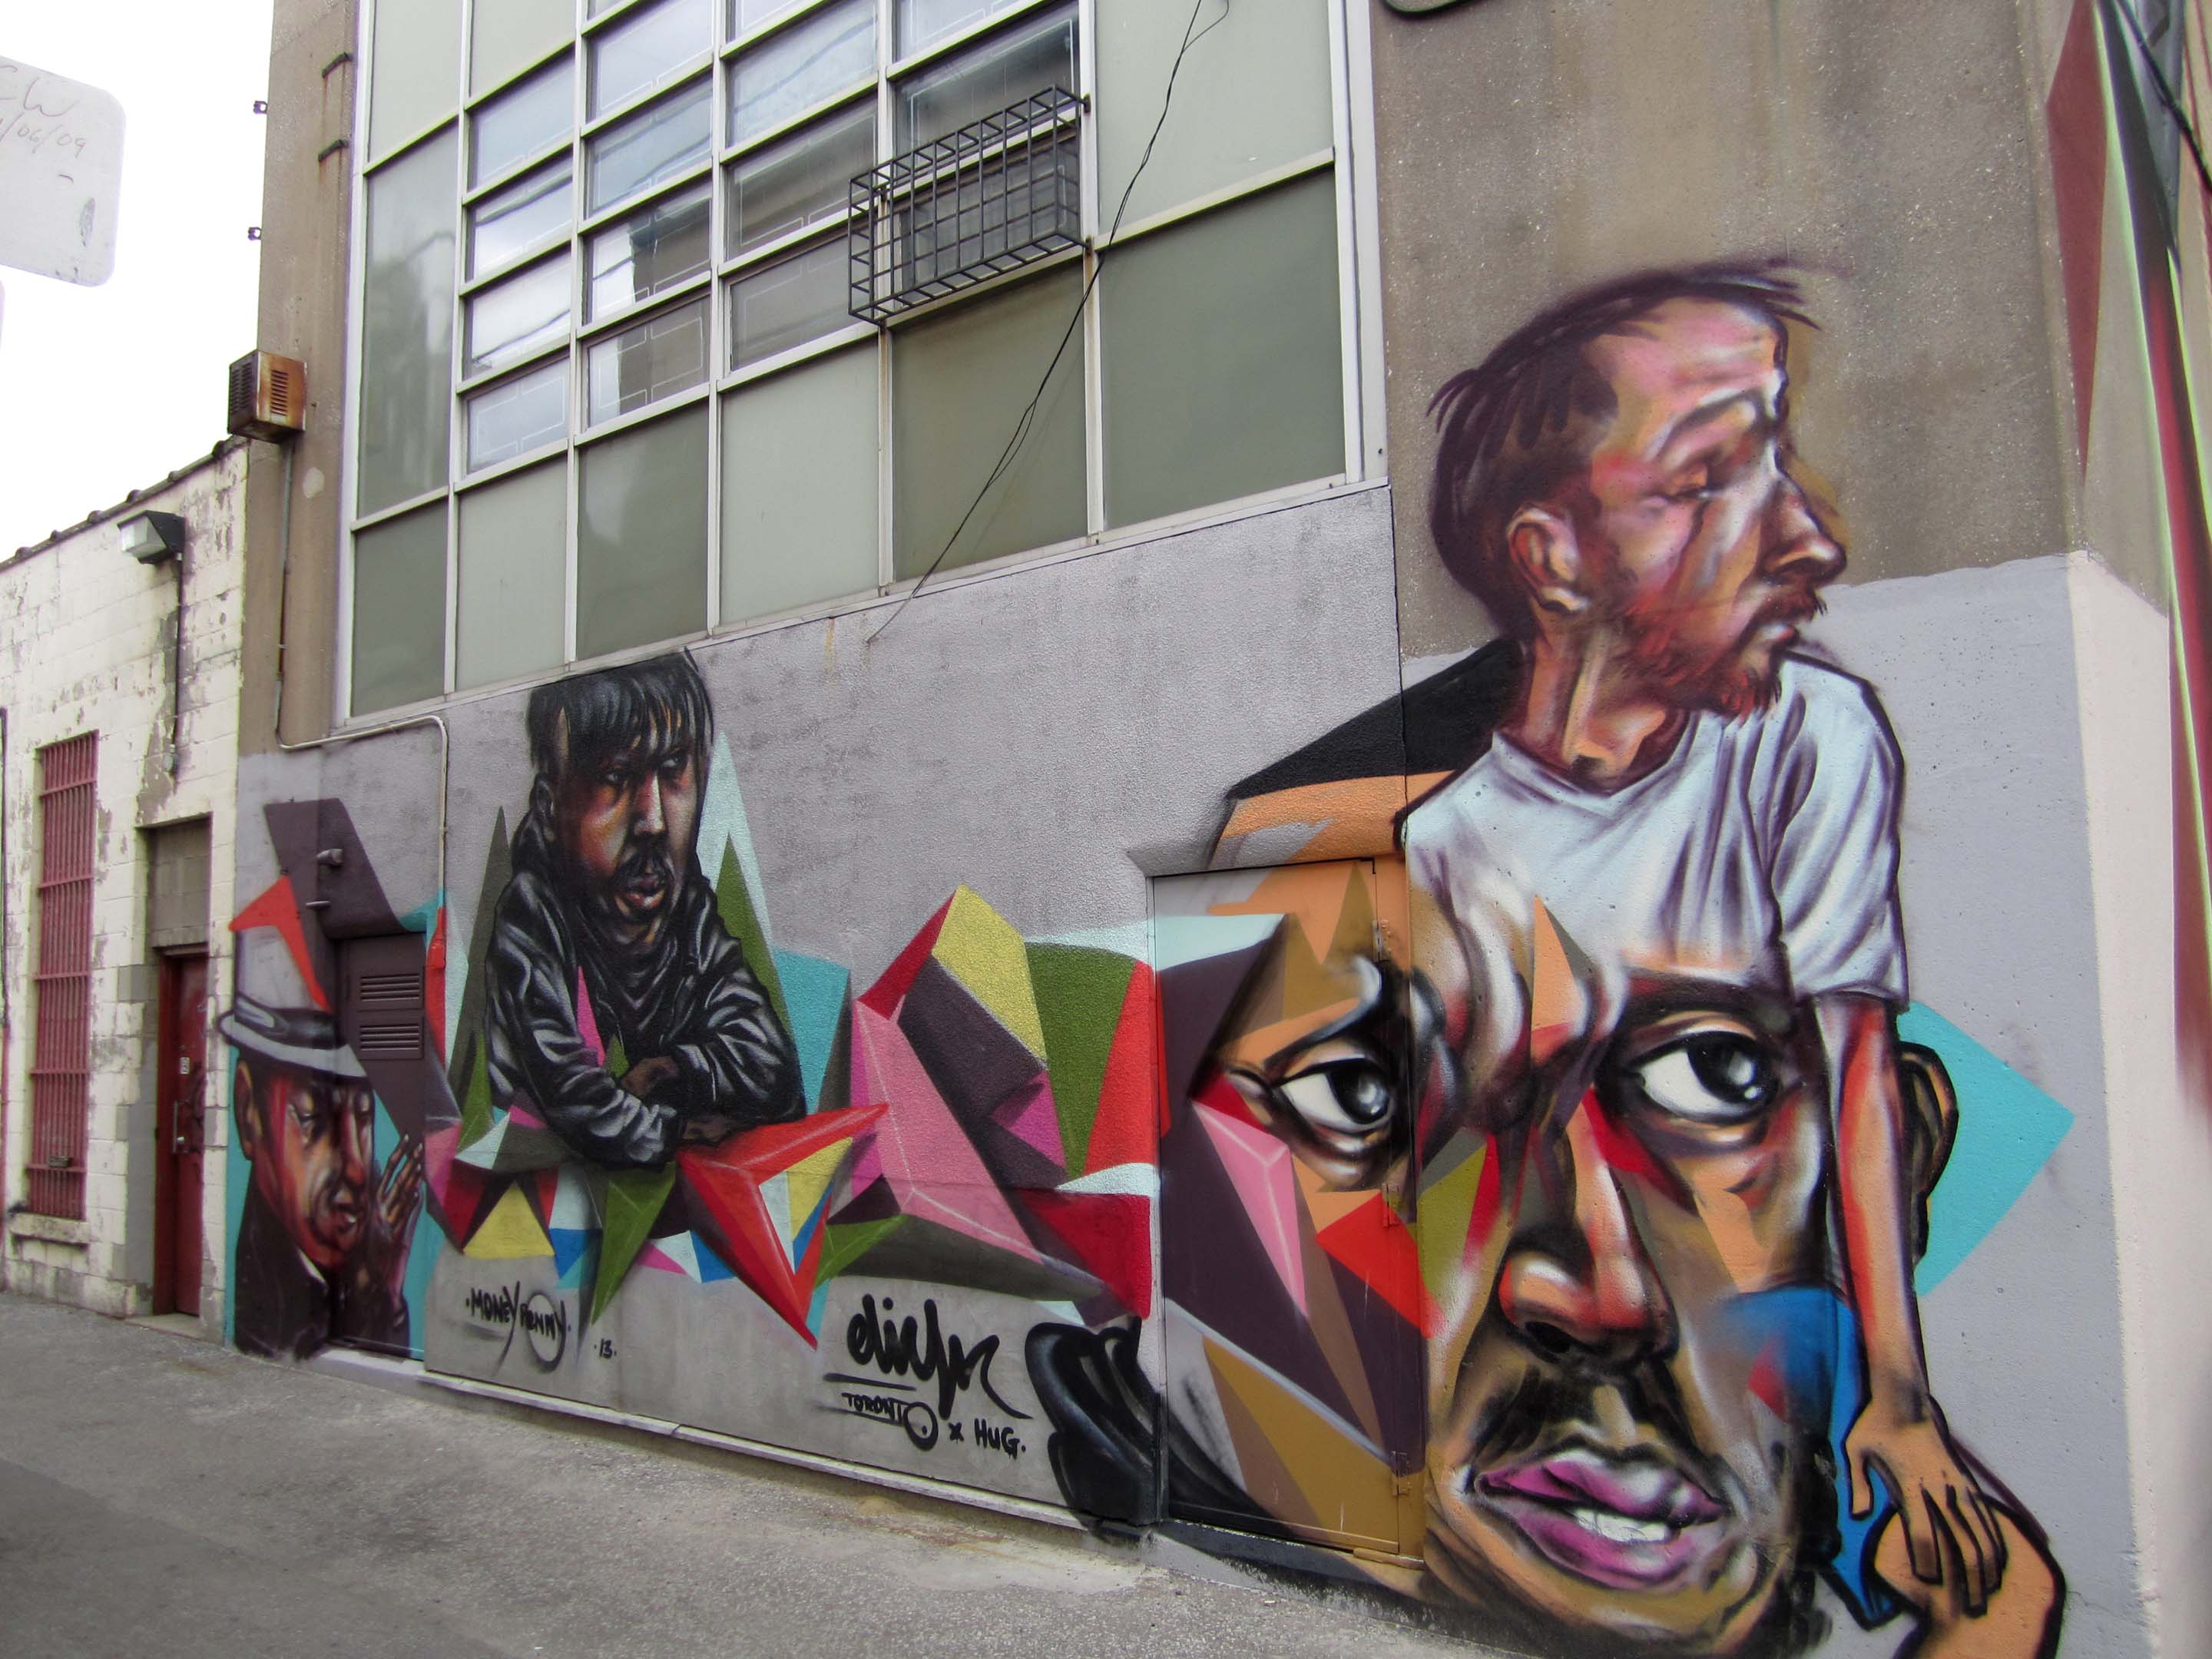 Free 4 All Walls in Windsor, Ontario: Elicser 1.jpg